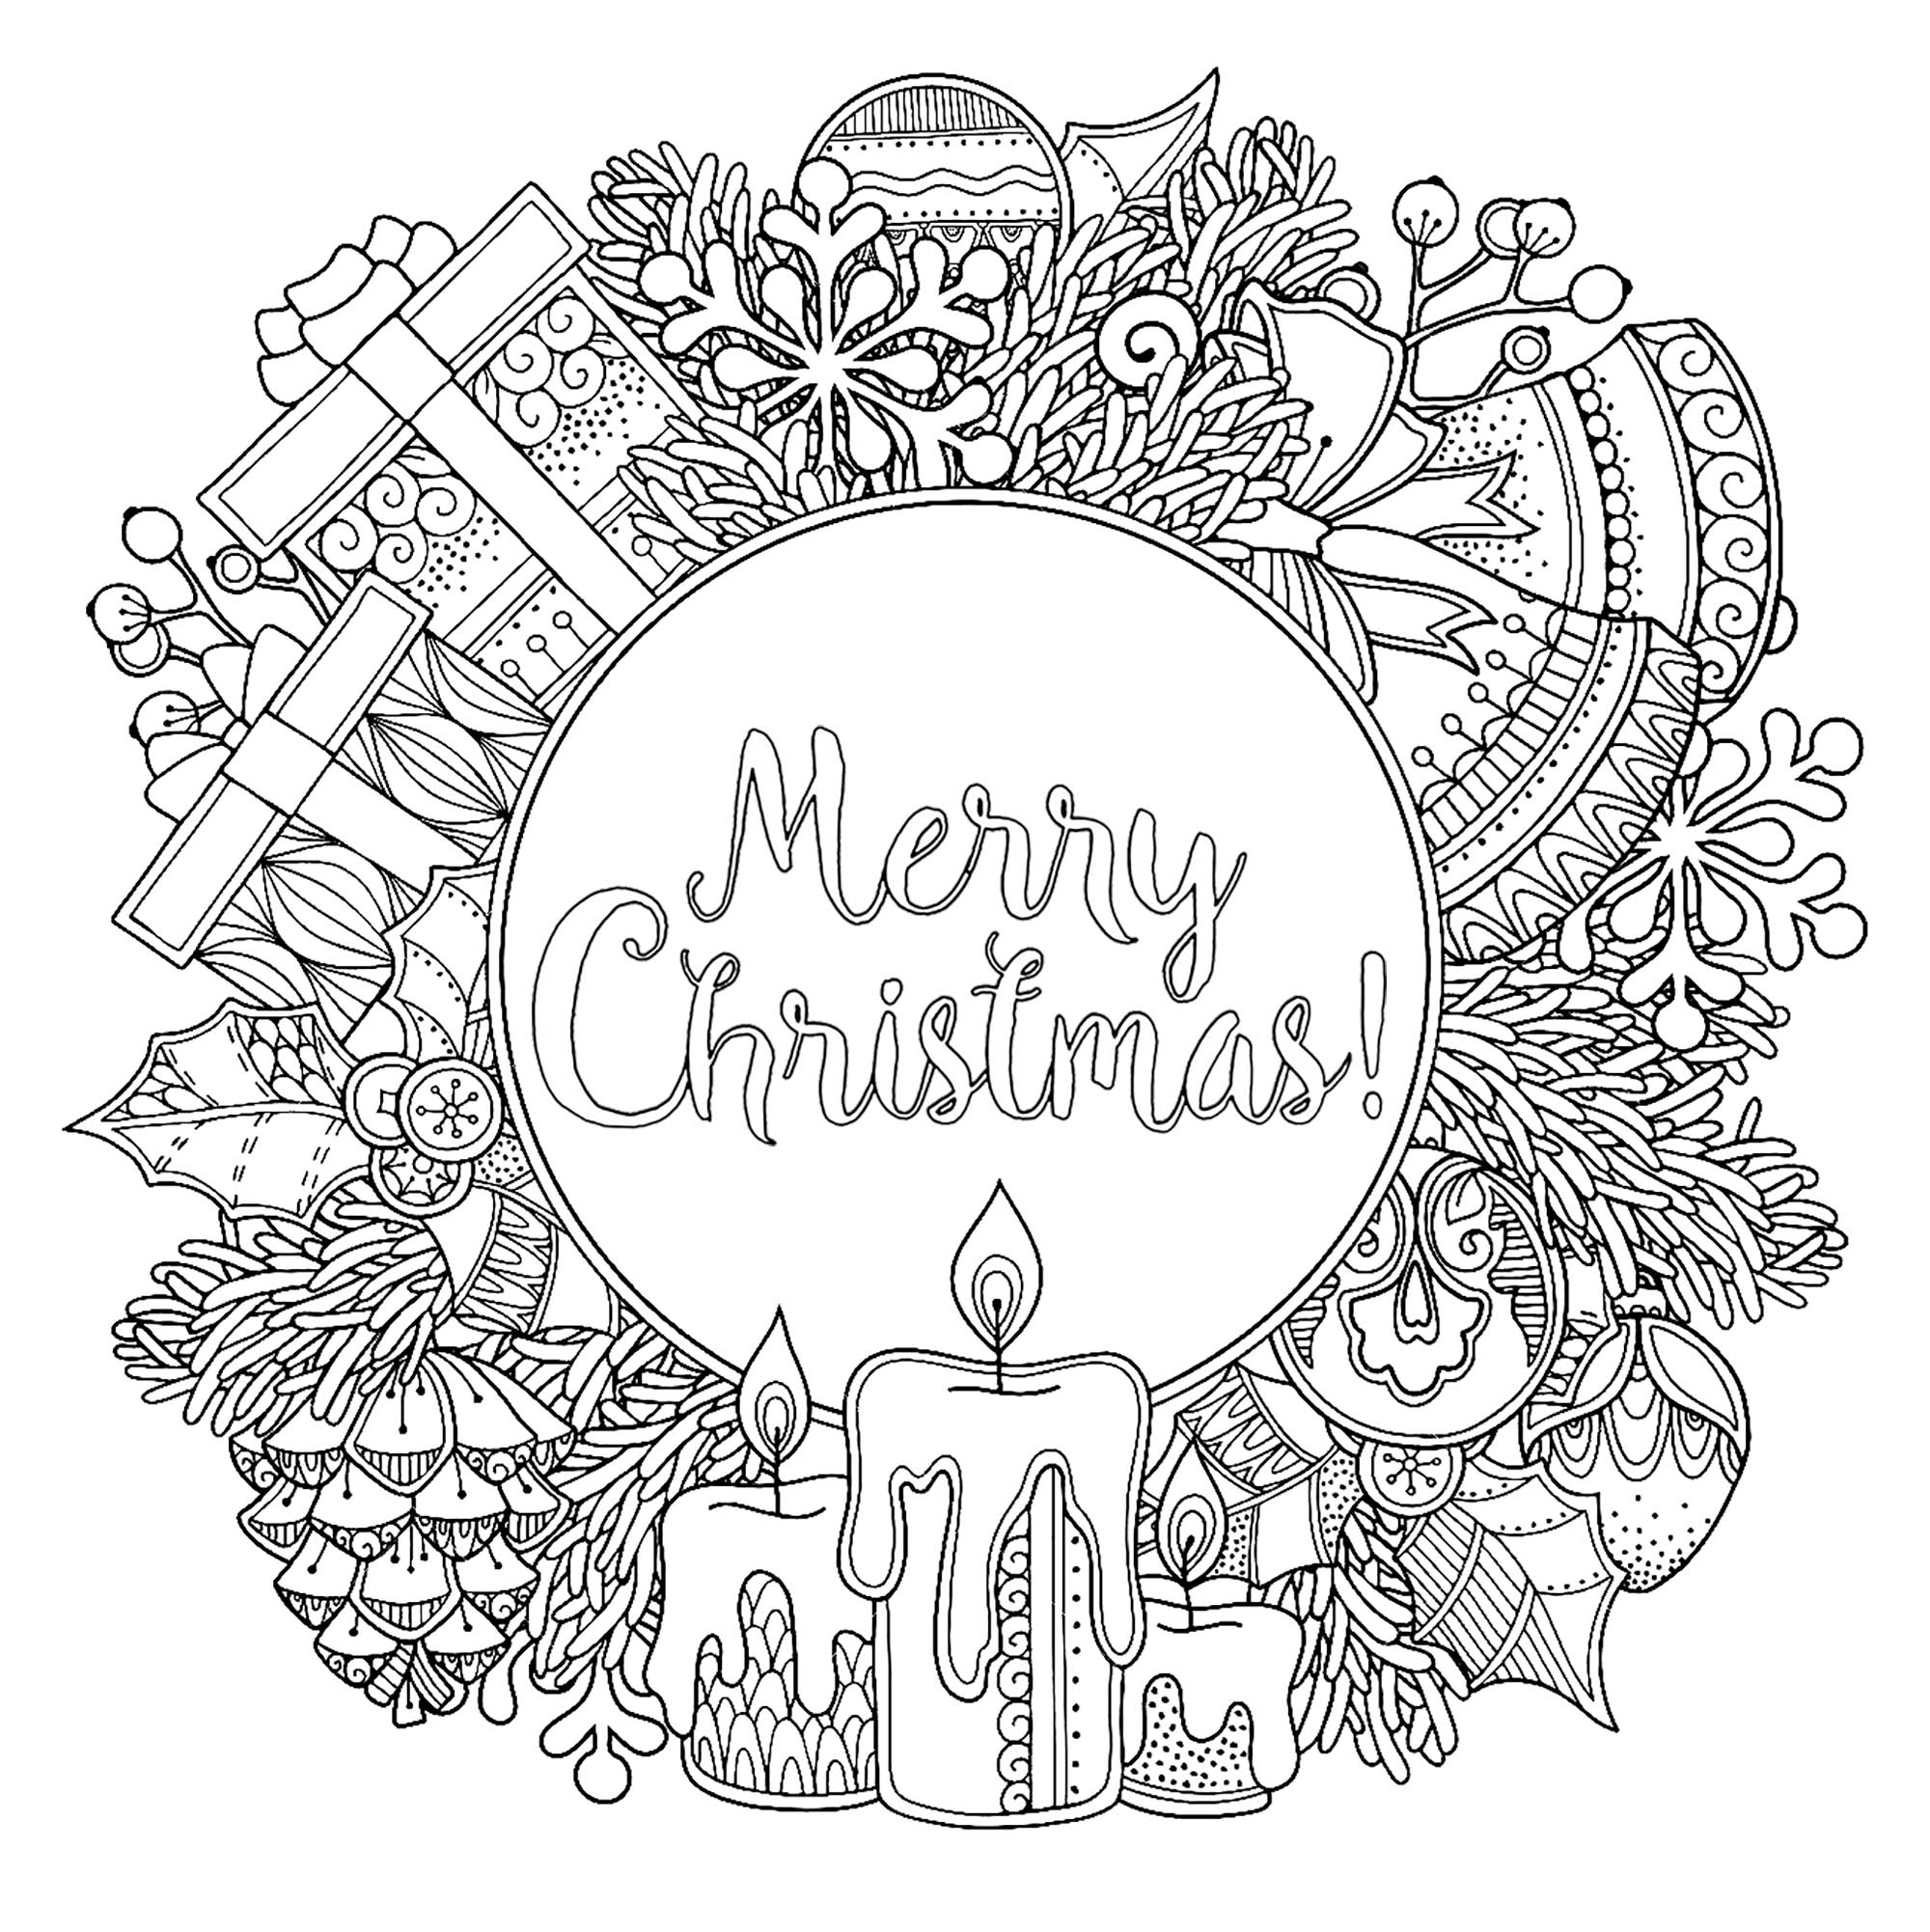 Doodl Christmas Wreath